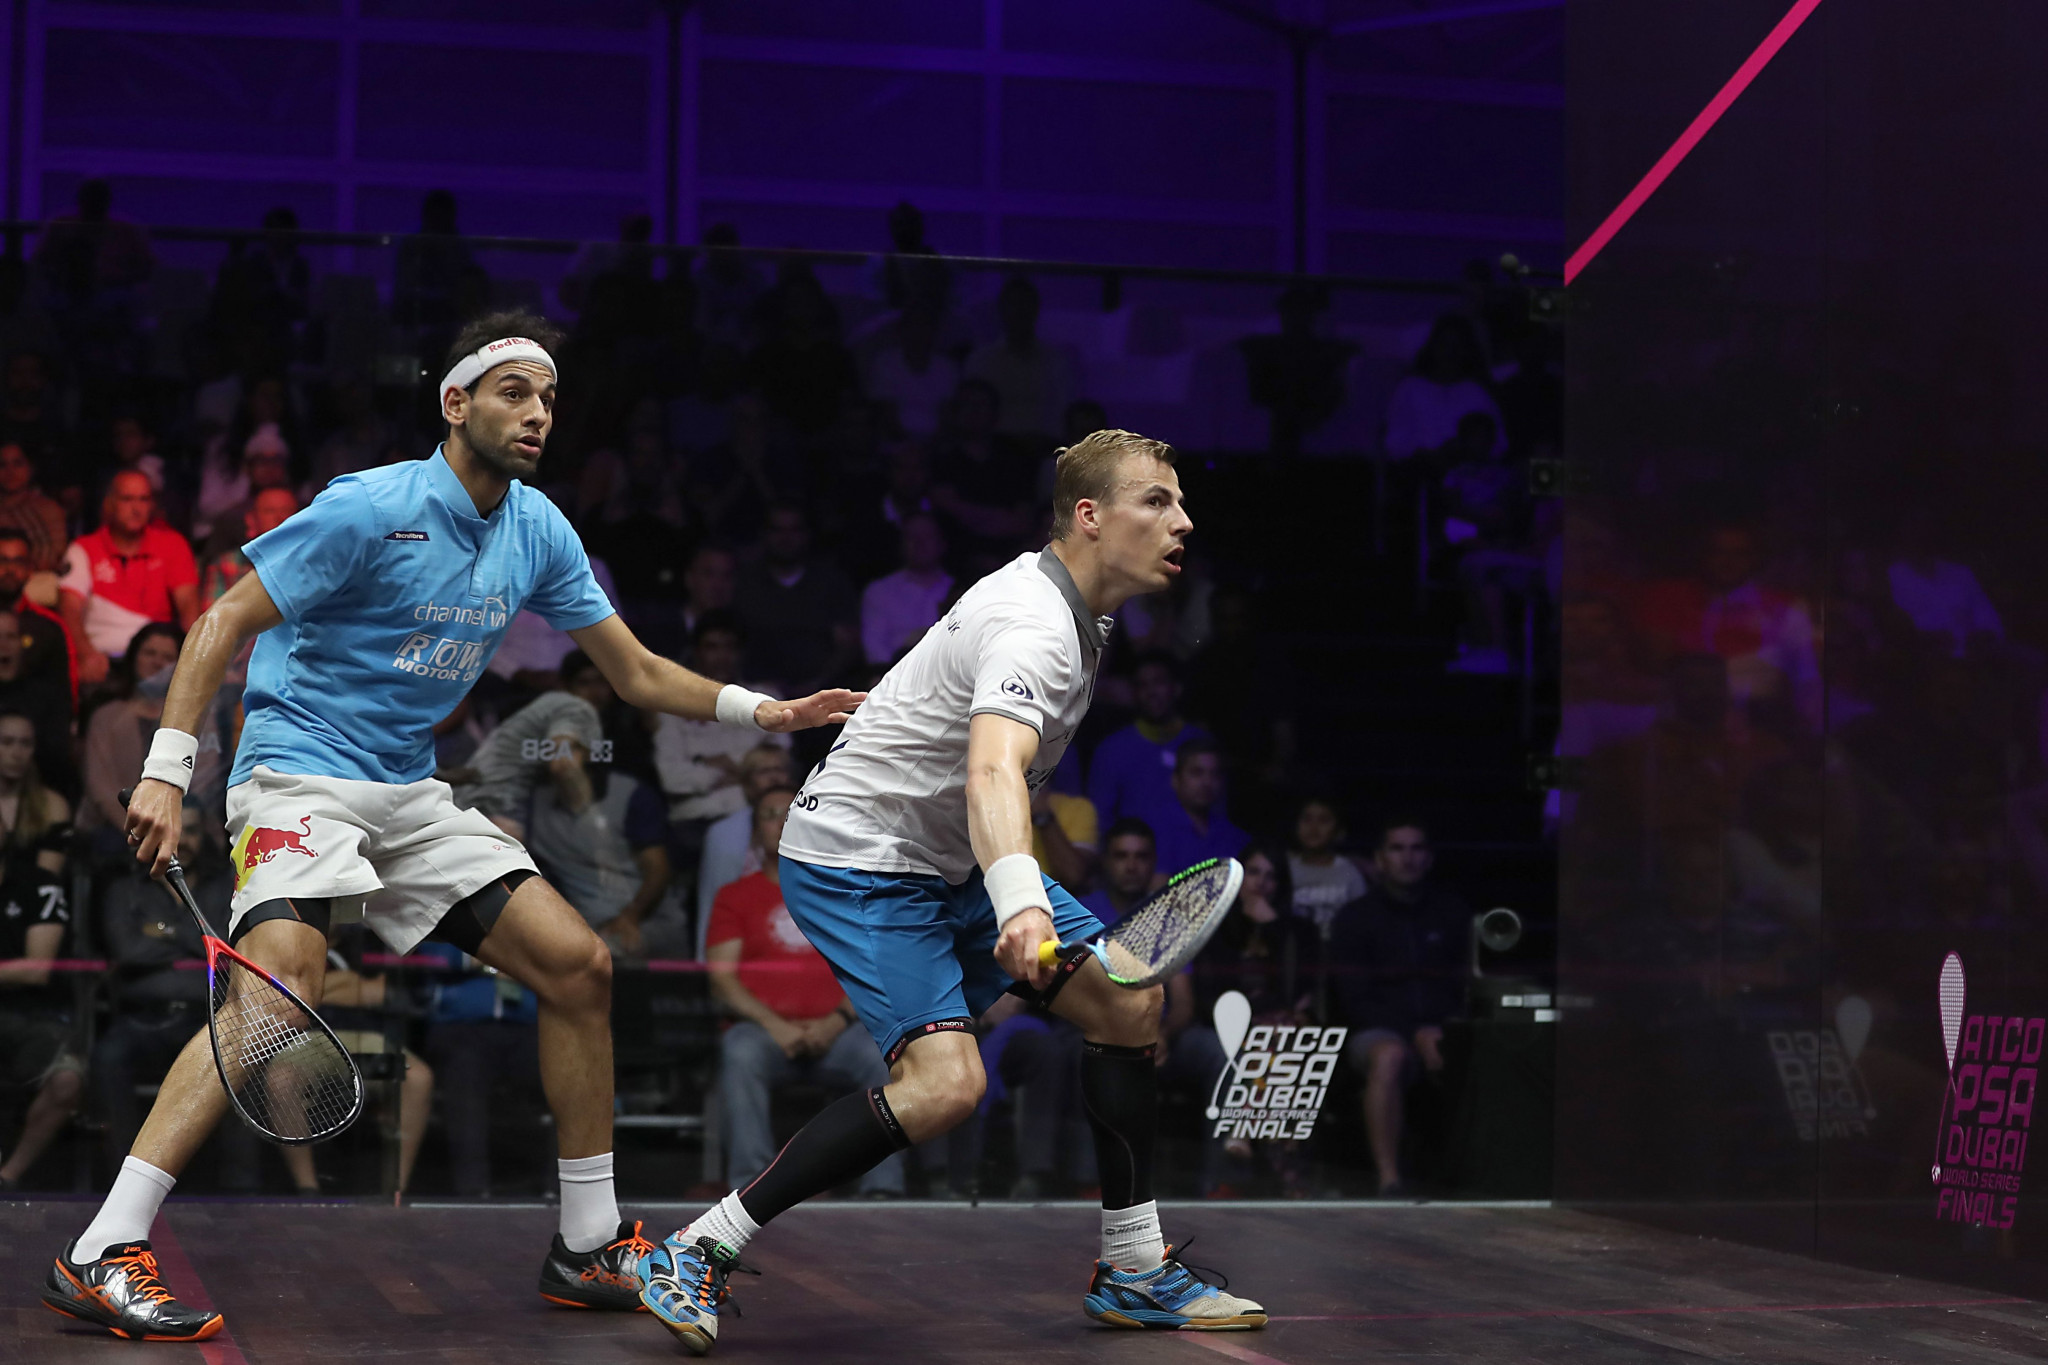 Squash community reacts with anger at Paris 2024 snub as players prepare for PSA World Championships